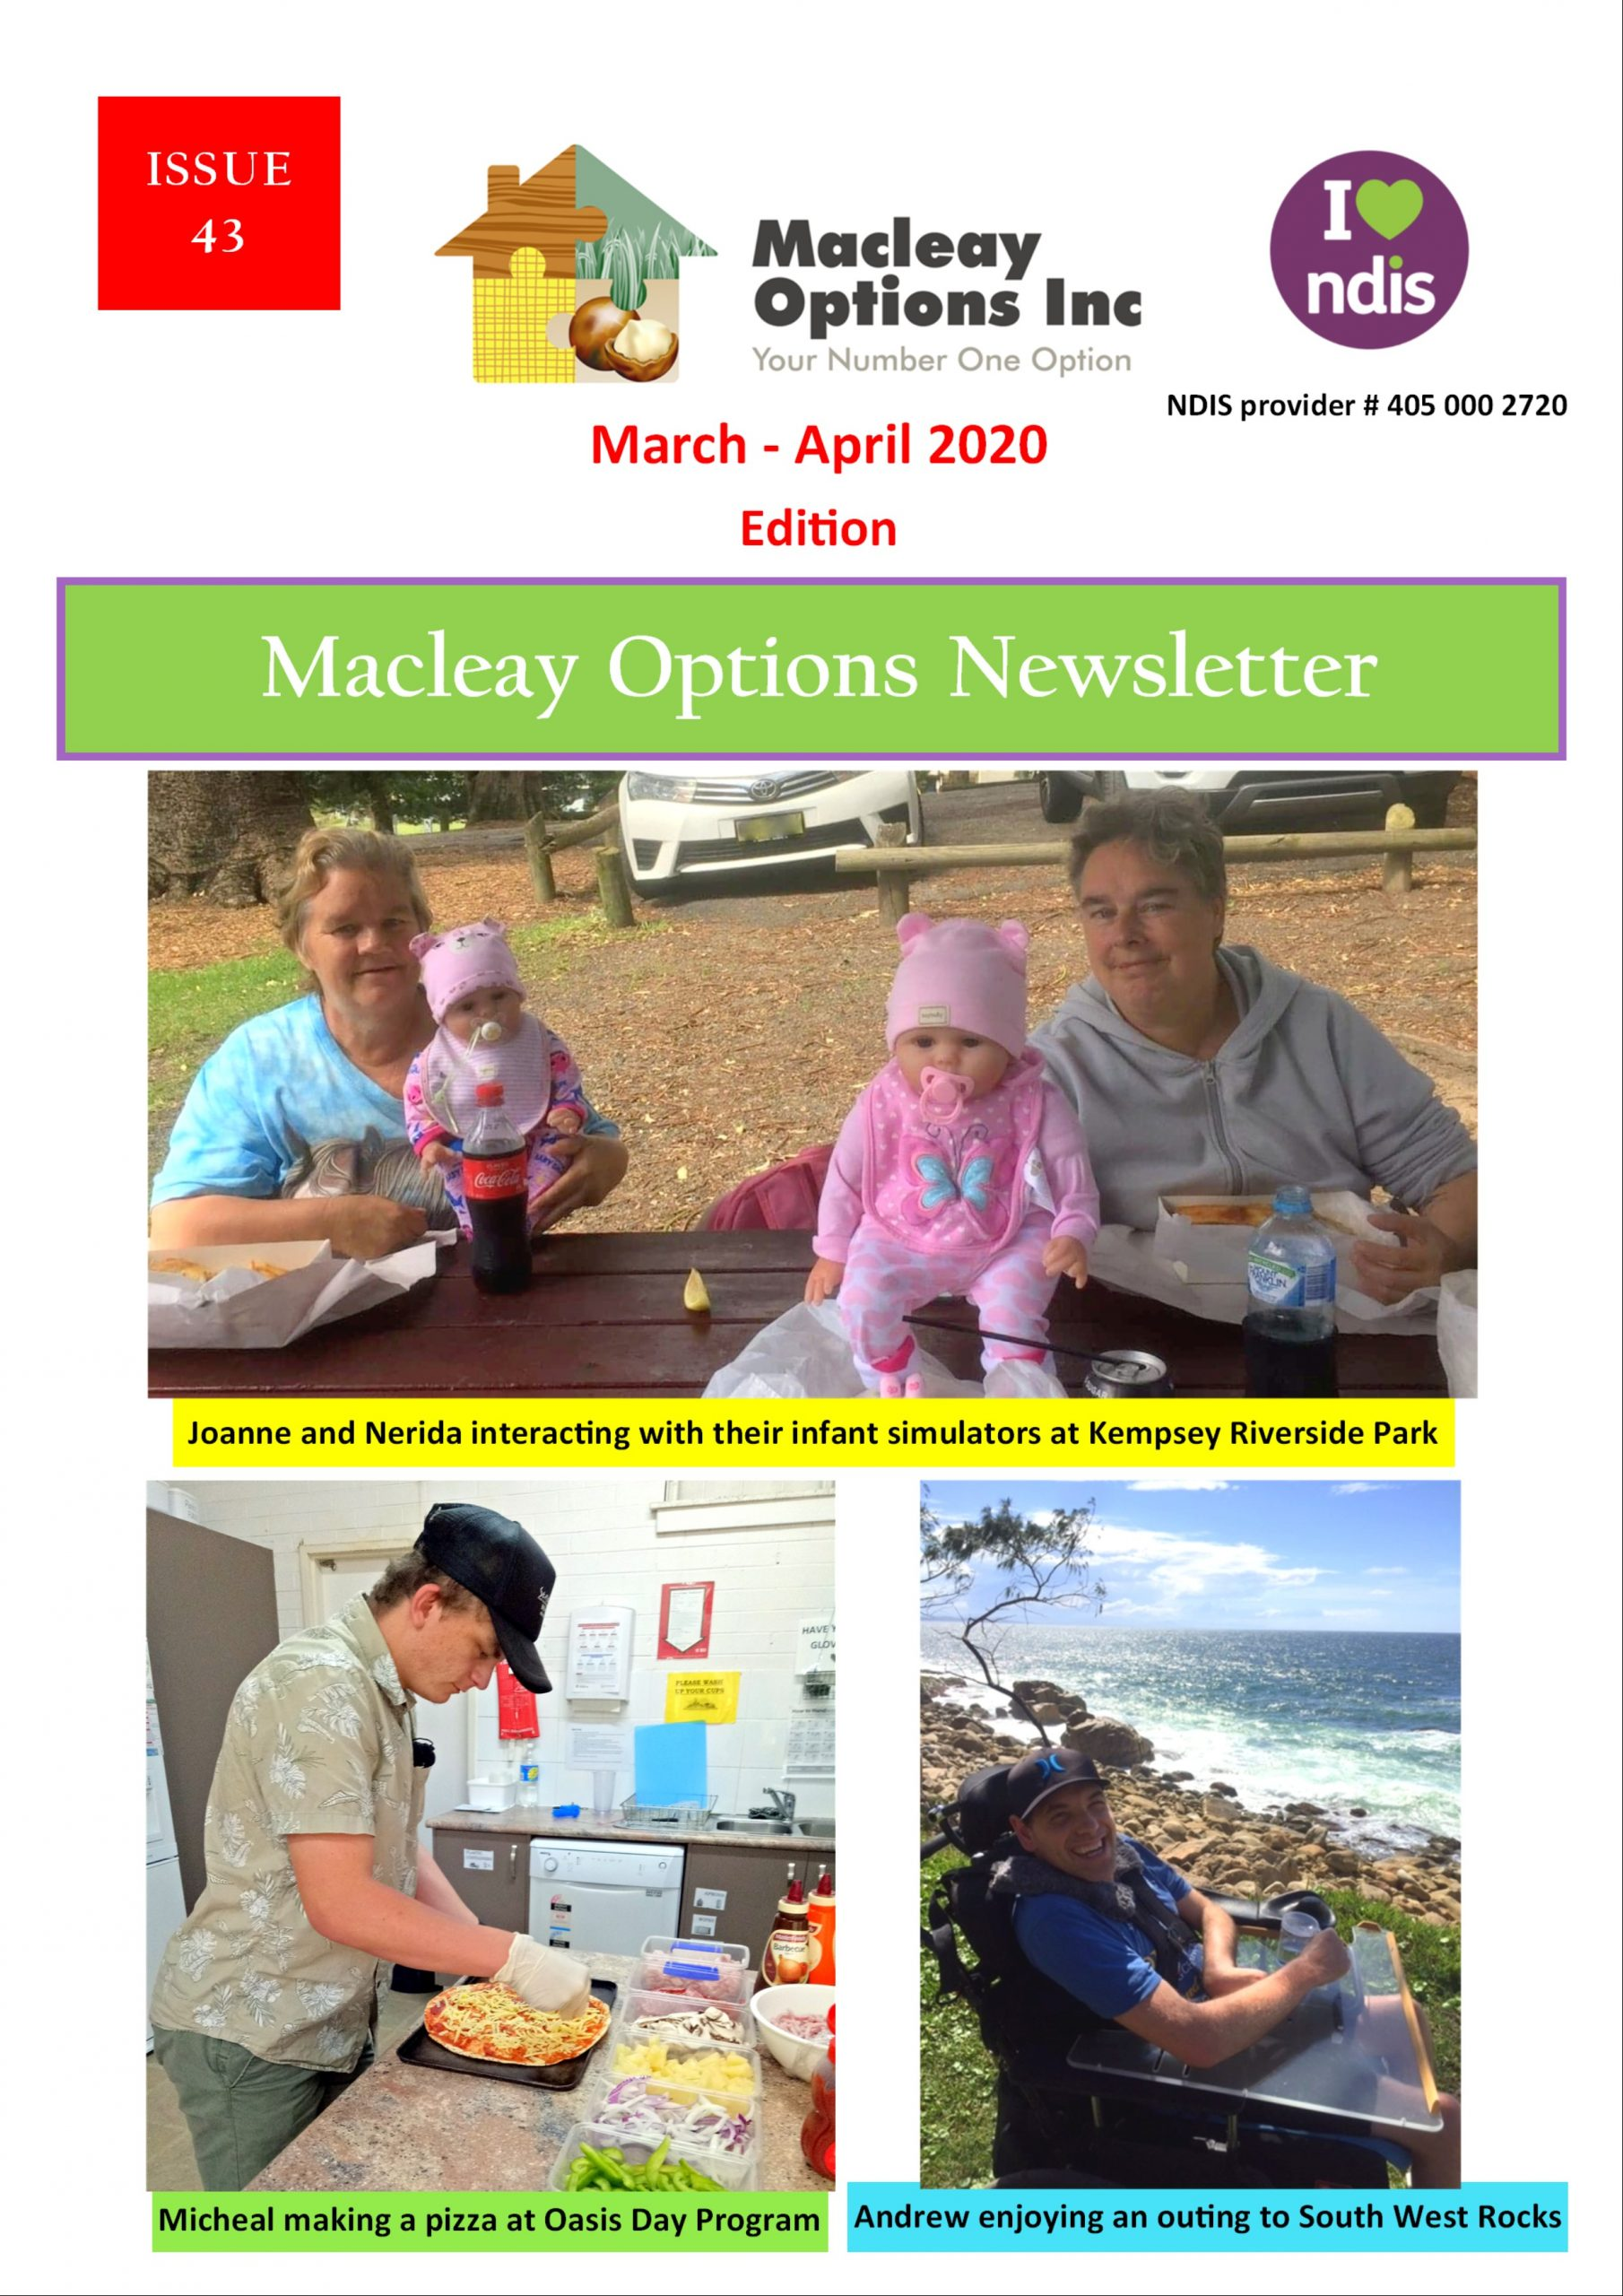 Macleay Options Inc - March April 2020 Newsletter